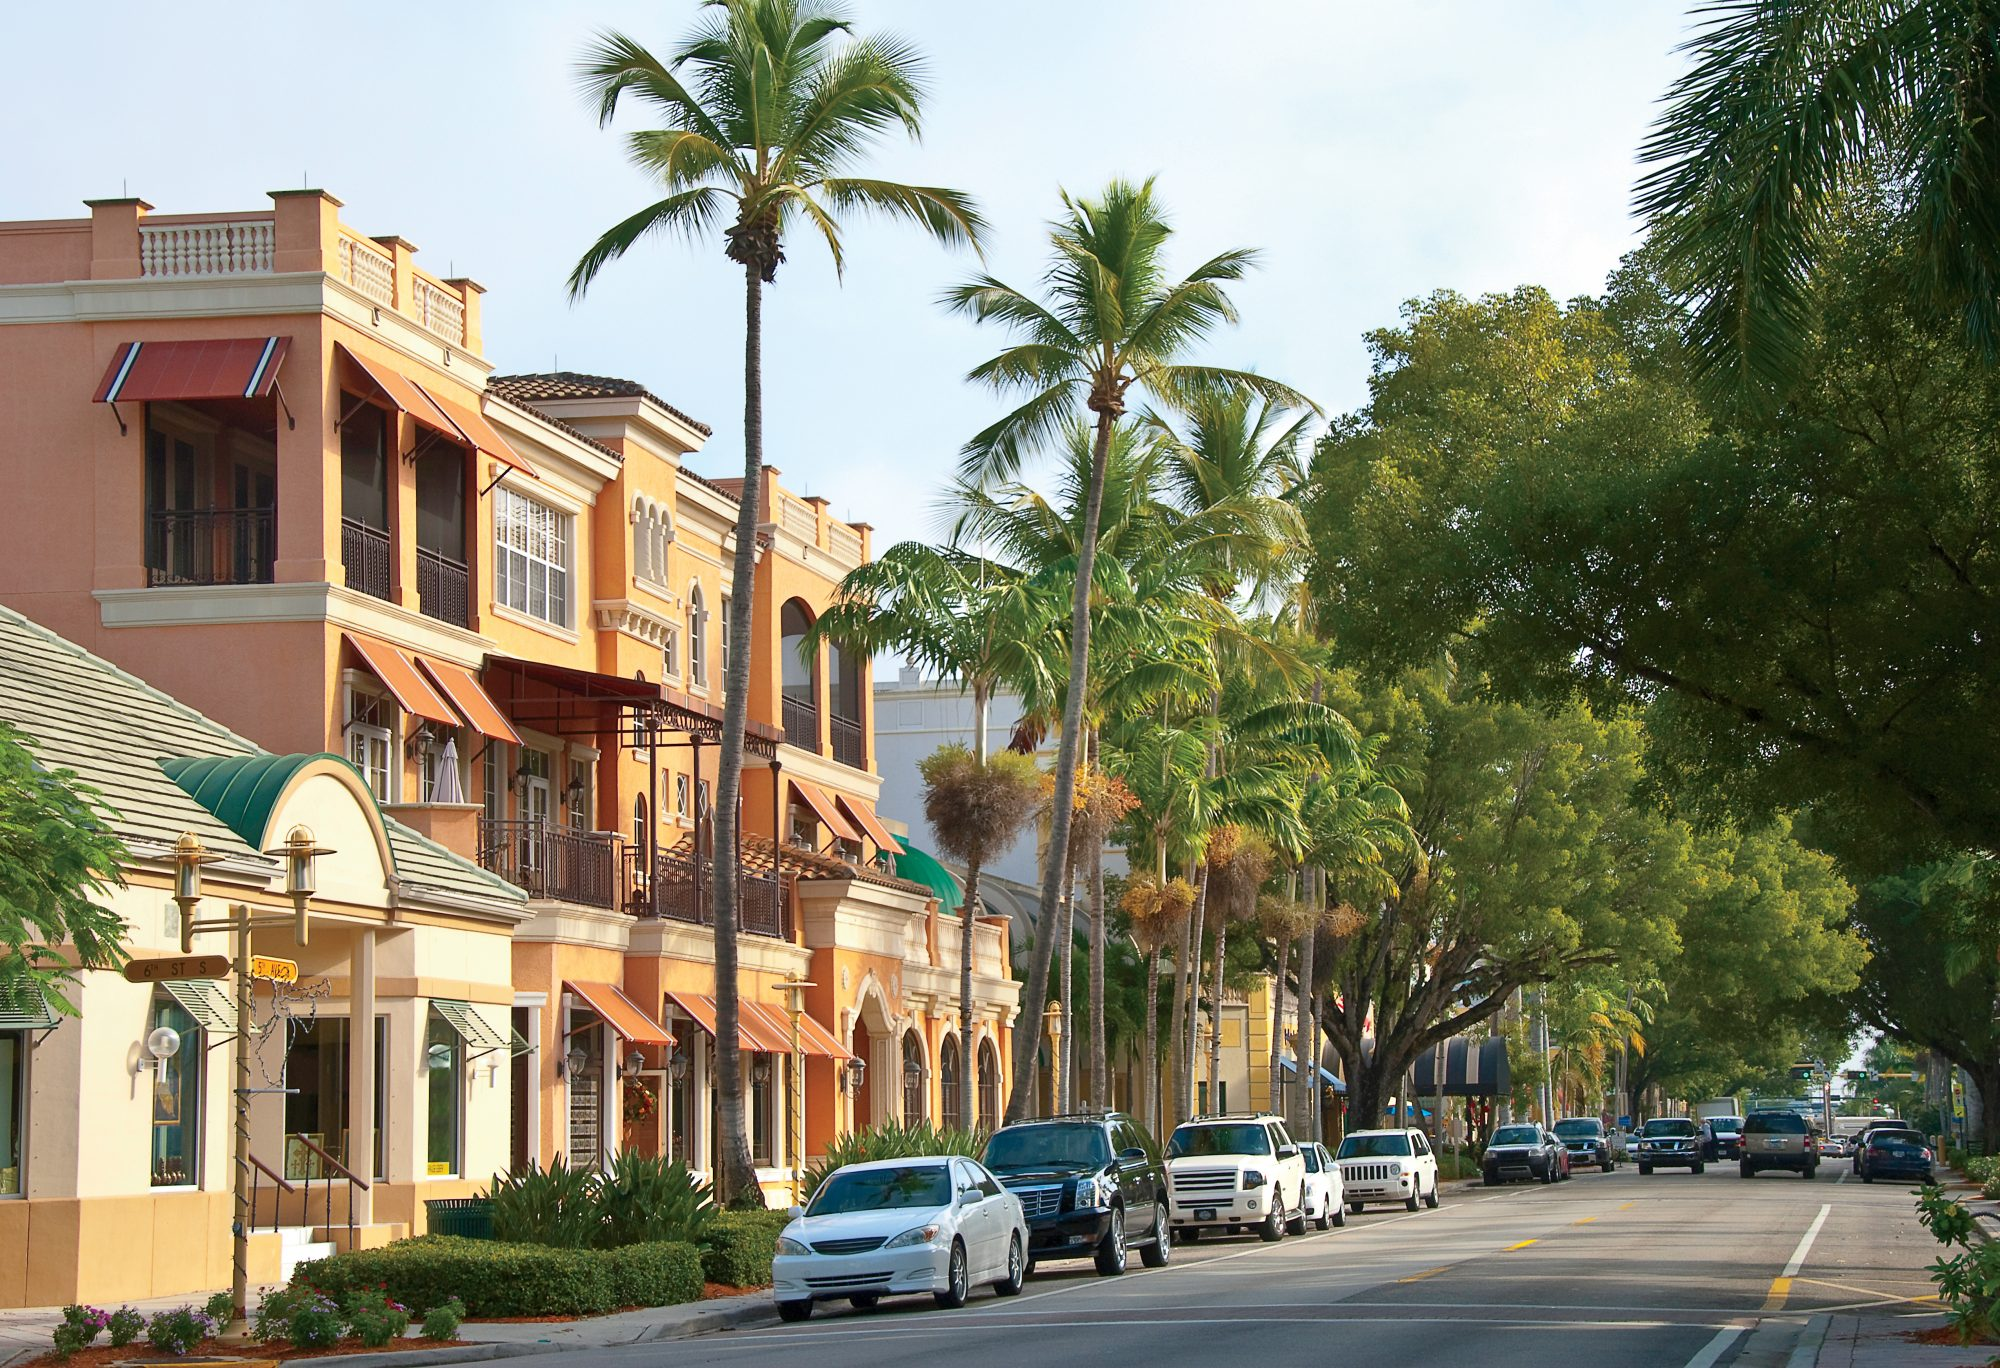 This gorgeous little Gulf coast town with Mediterranean-inspired architecture is a total dream of a place, so much so that it ranks highly in multiple surveys on happiness and well-being. It's also the number one place in the country to retire, according to SmartAsset, with plenty of medical care, social opportunities, and retirement centers nearby.